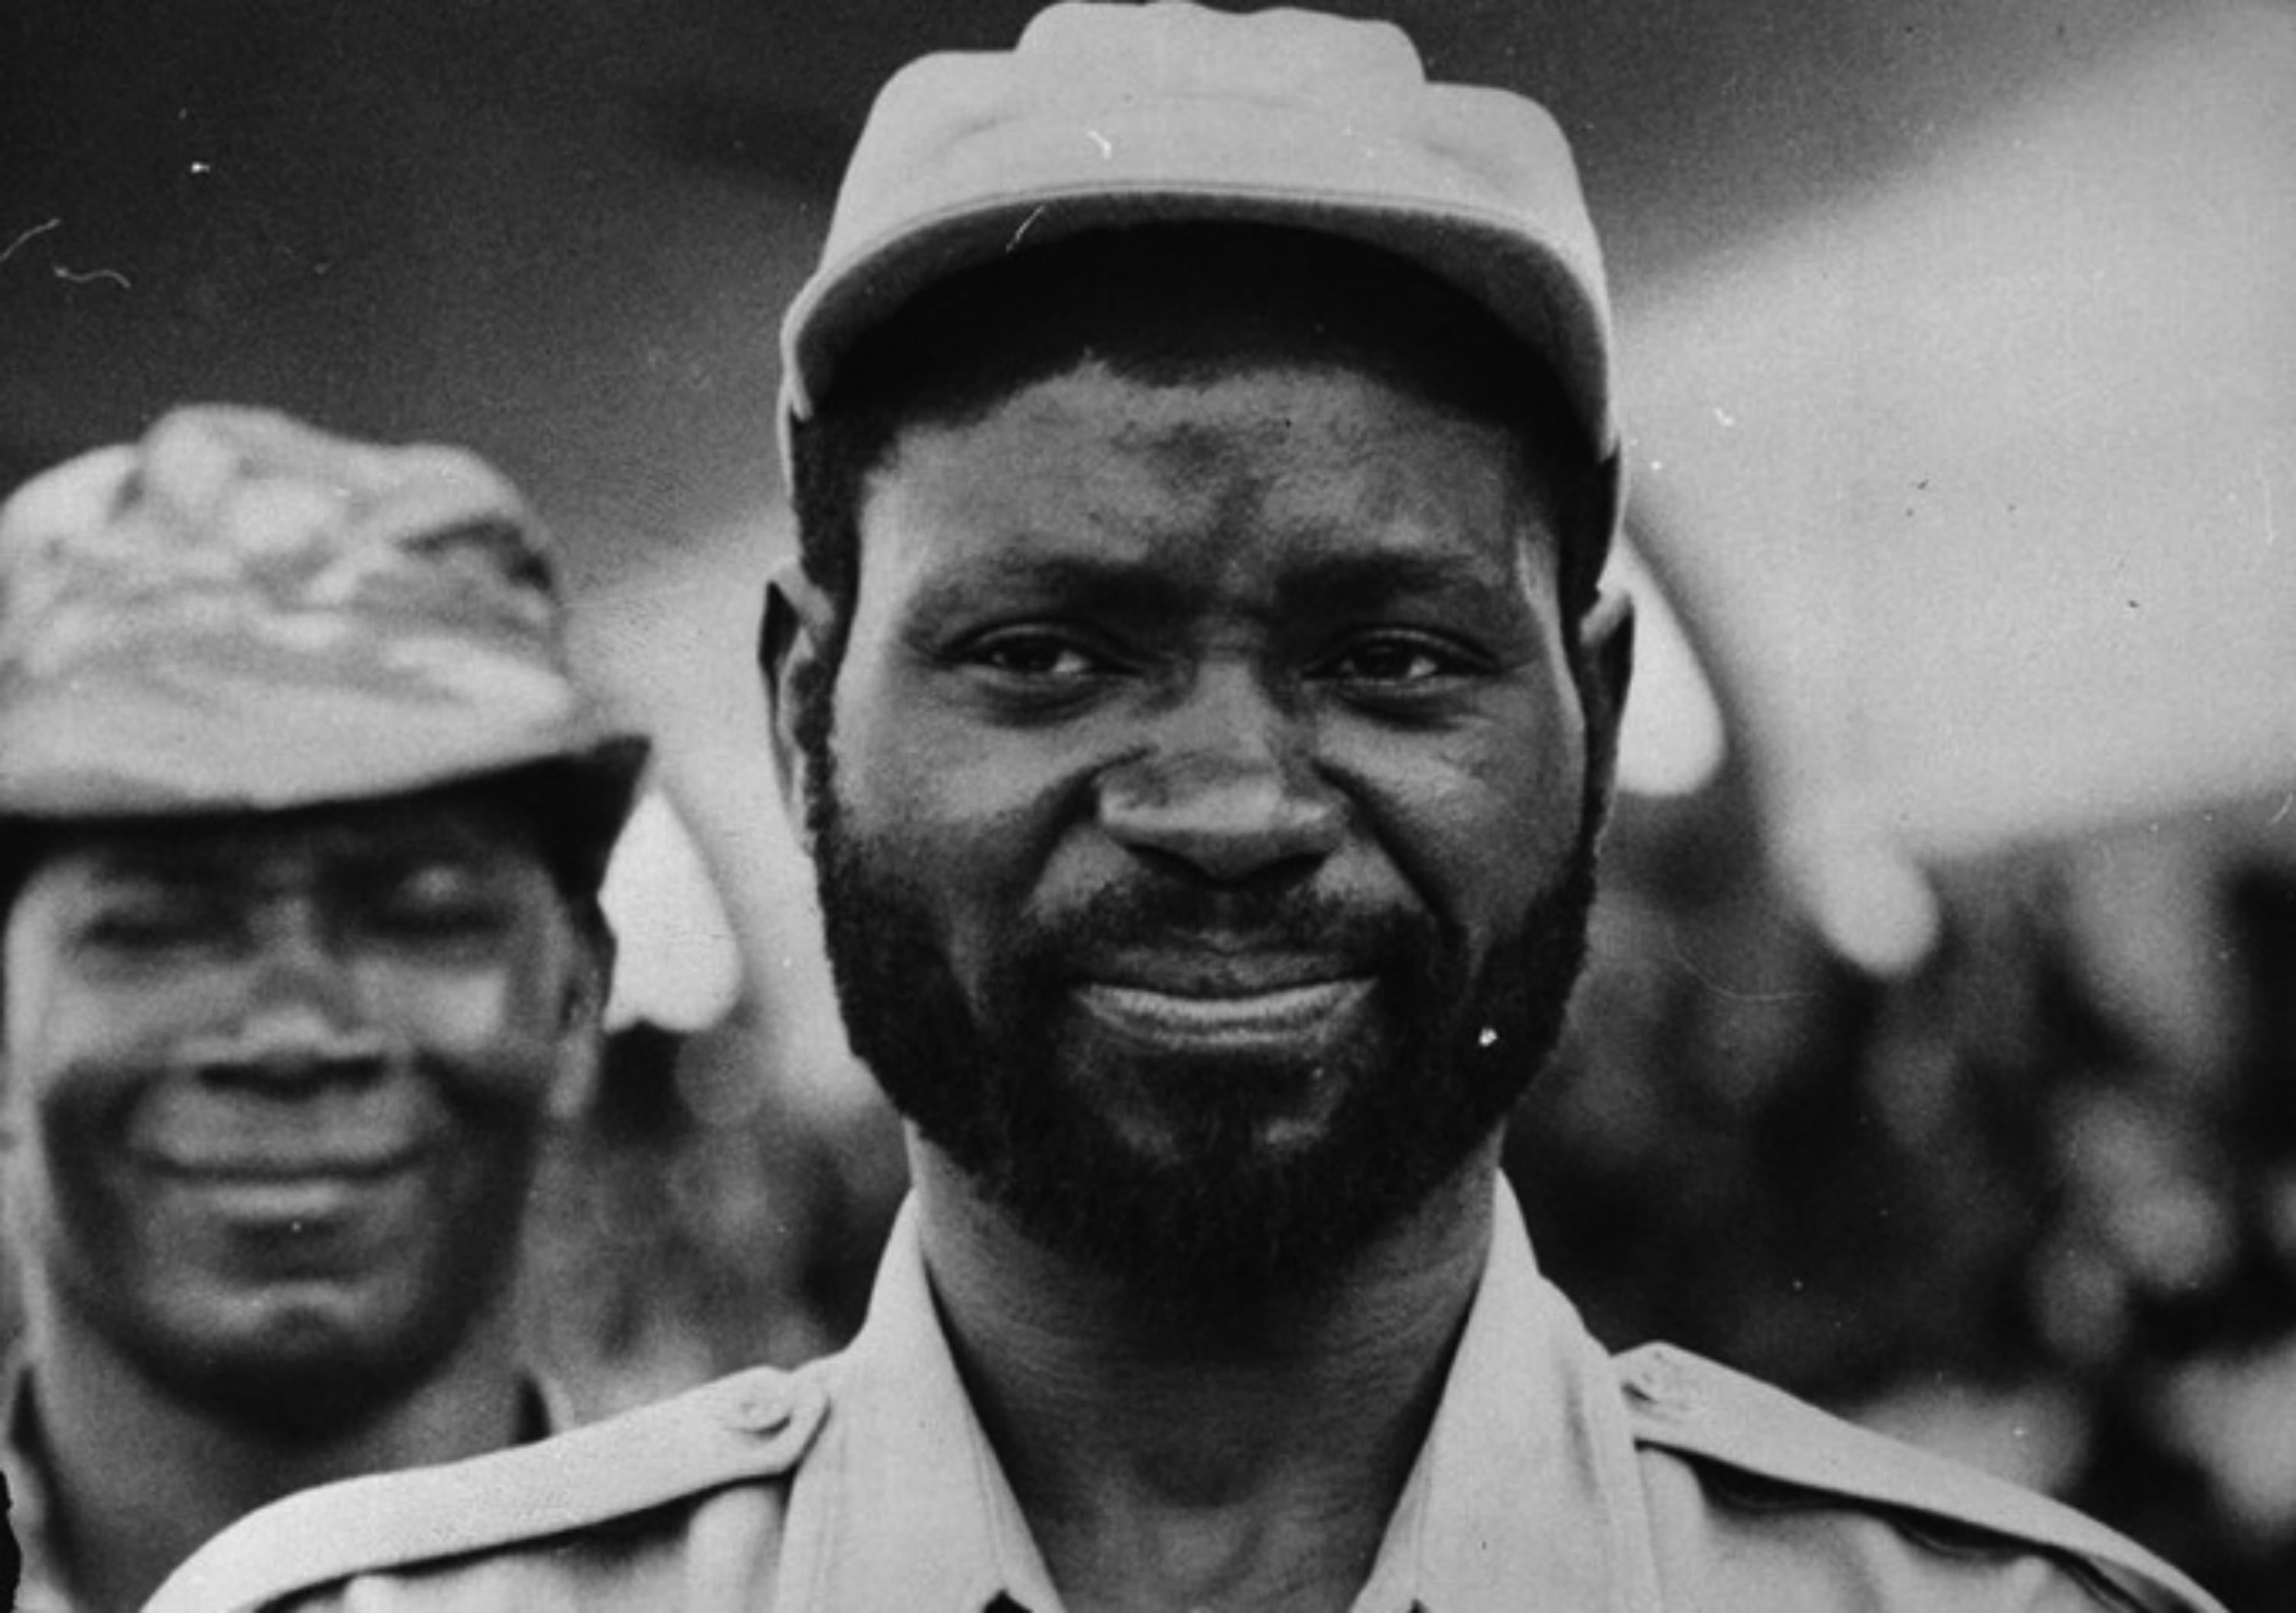 Faces Of Africa – Samora Machel: The Struggle Continues